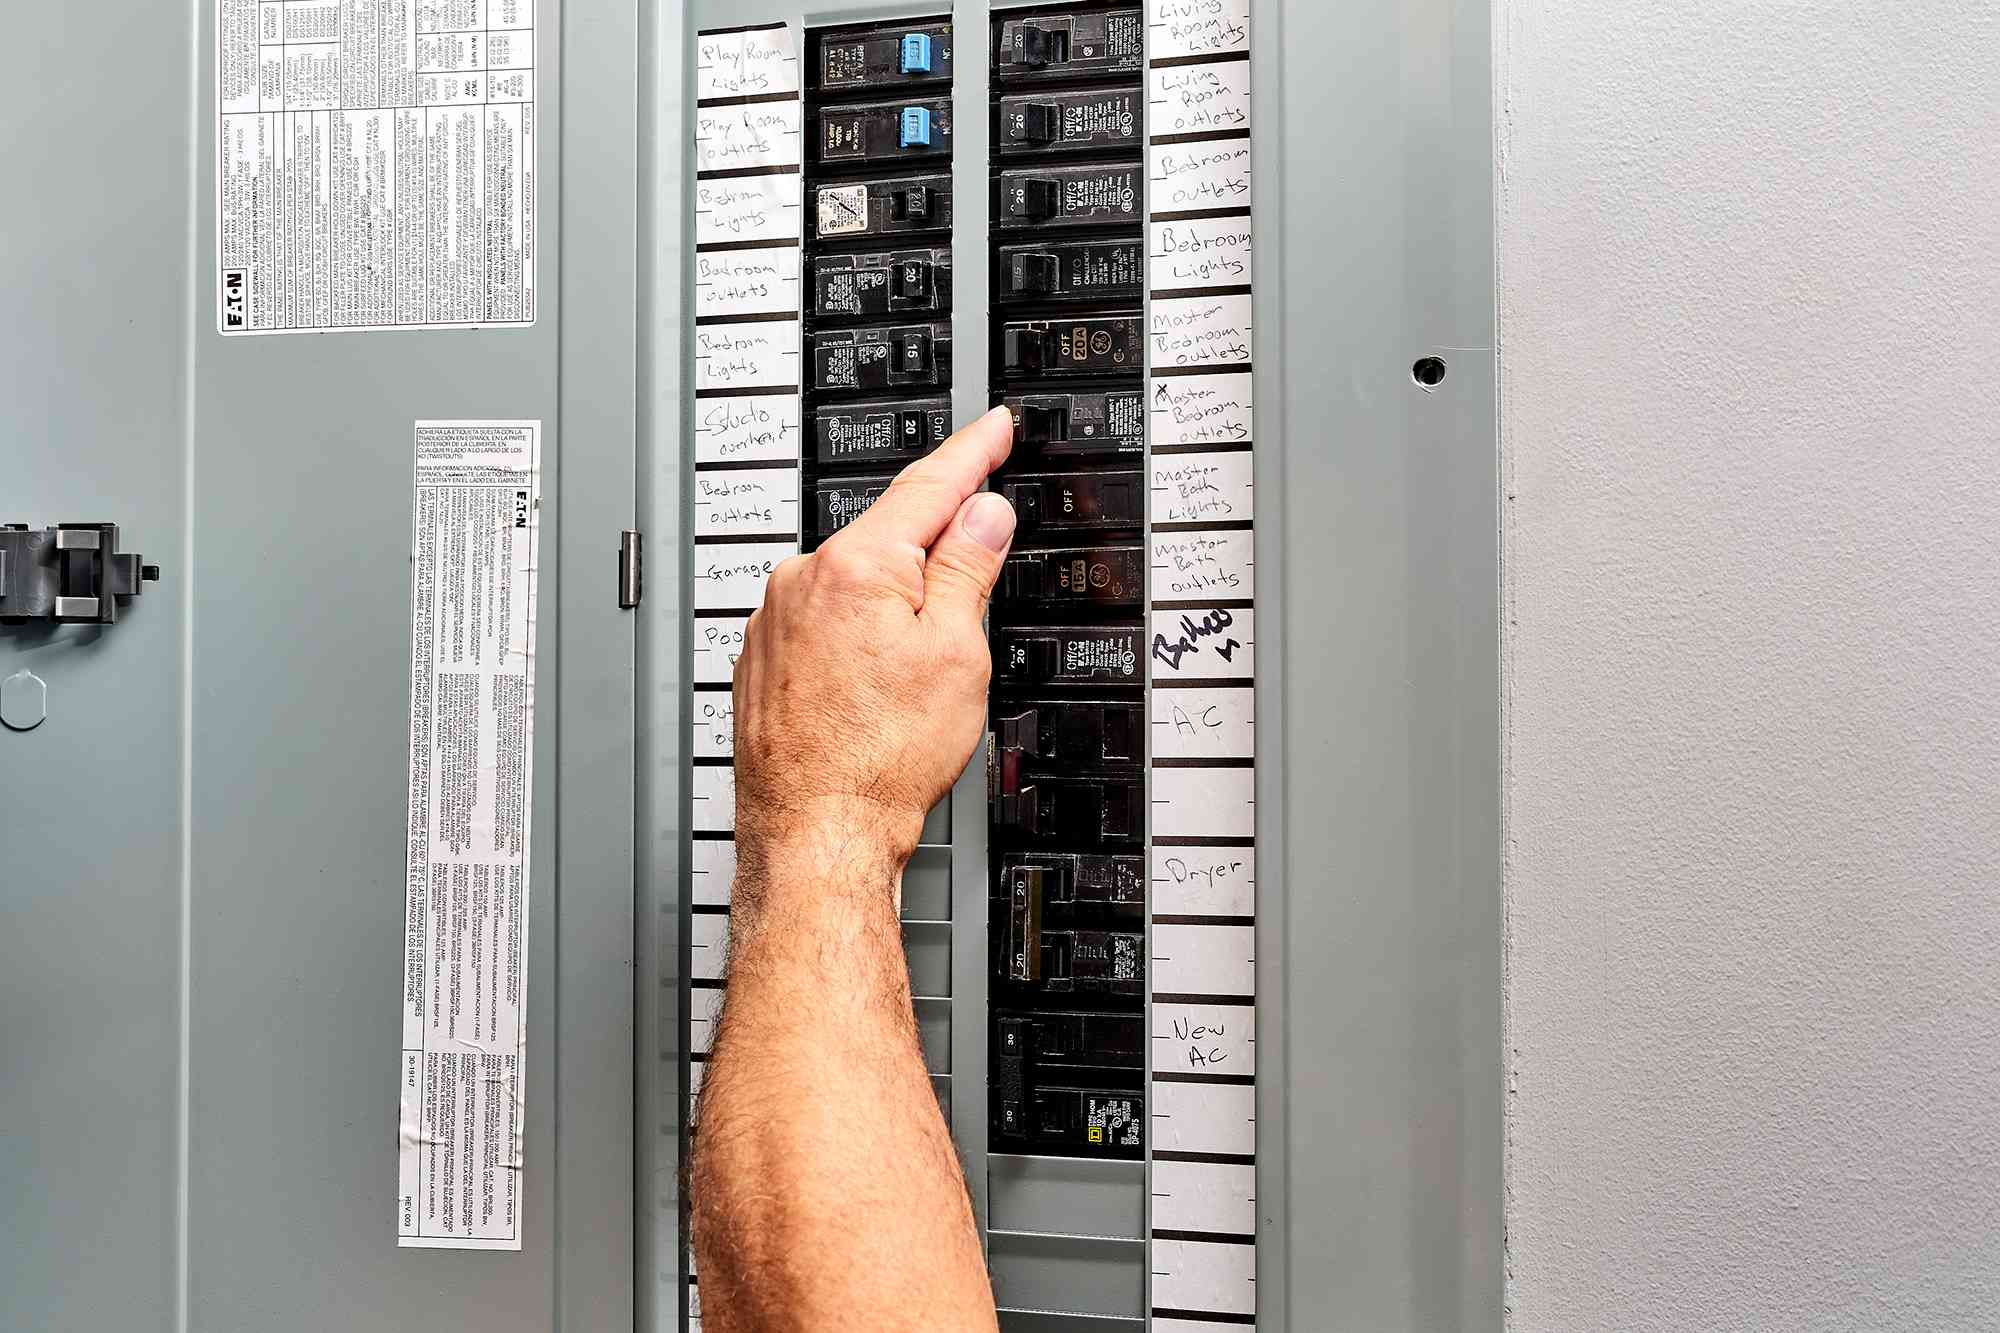 Circuit breaker panel power switched off